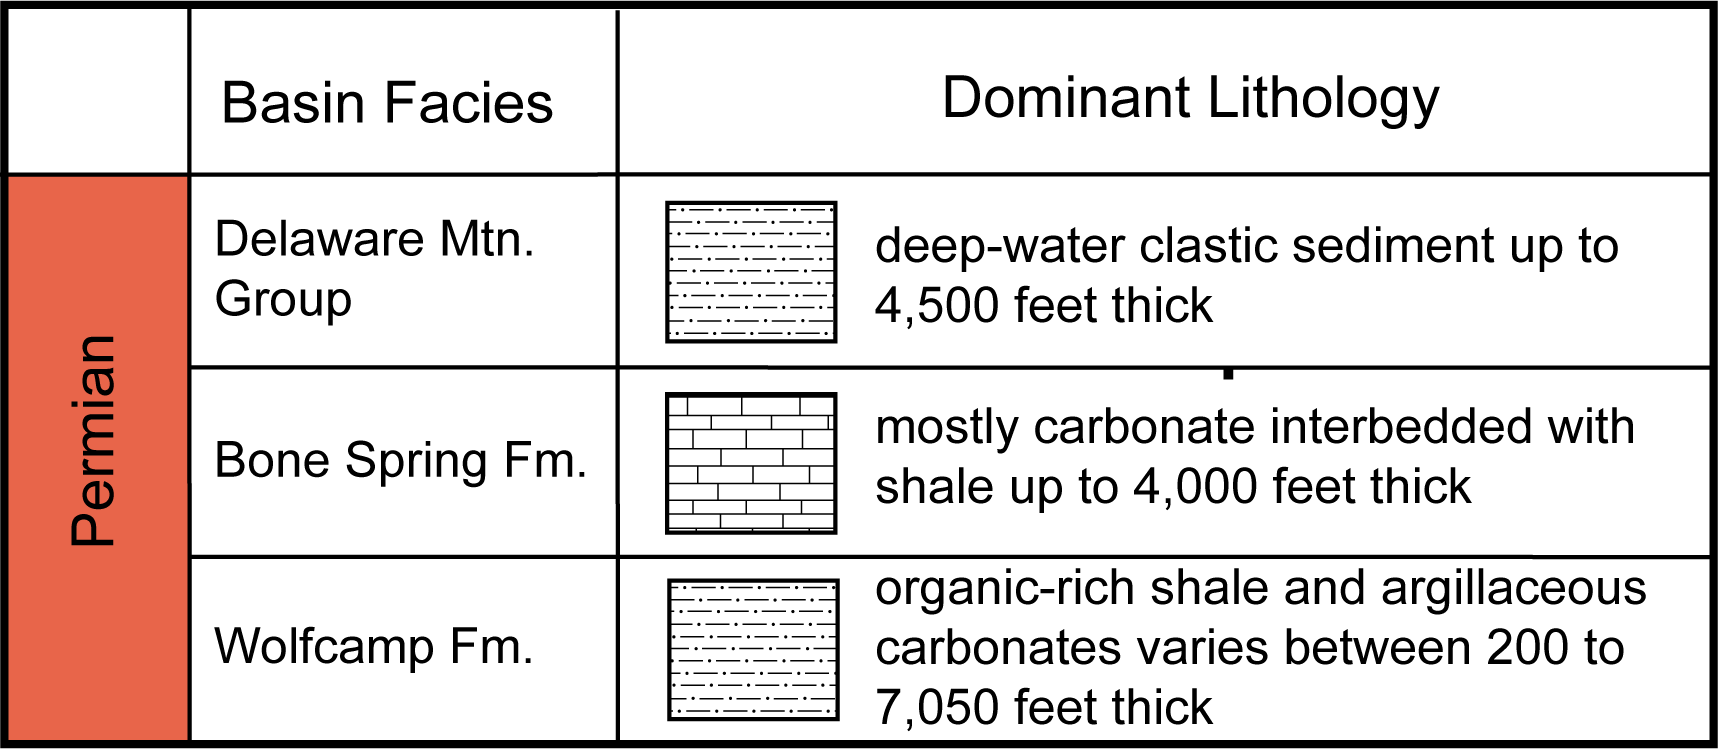 Simplified stratigraphy for the Delaware Basin